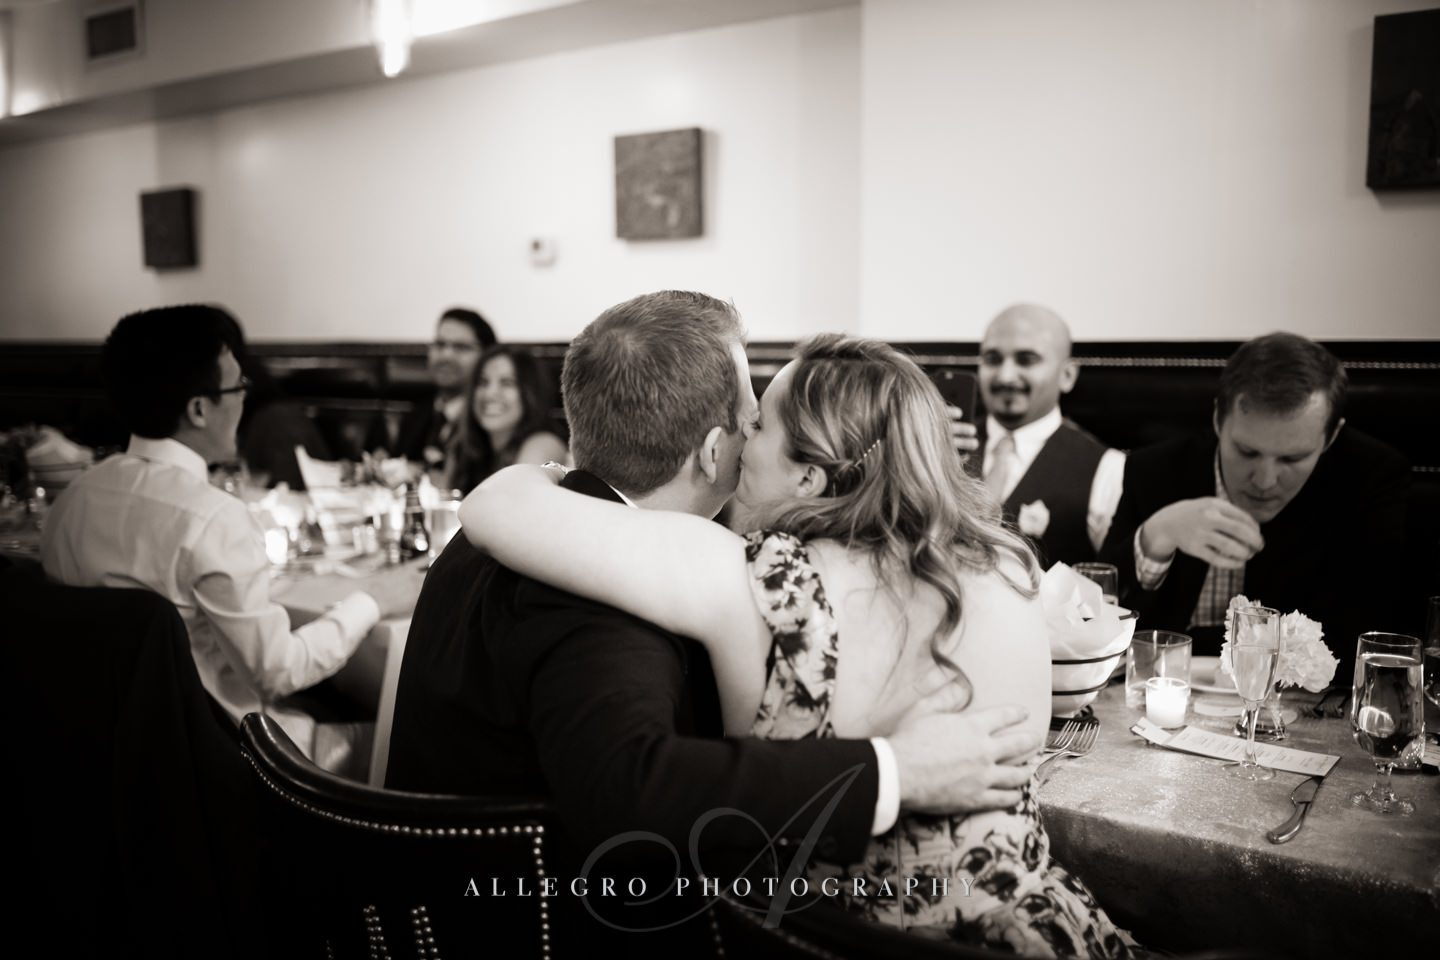 guest having fun - photo by Allegro Photography